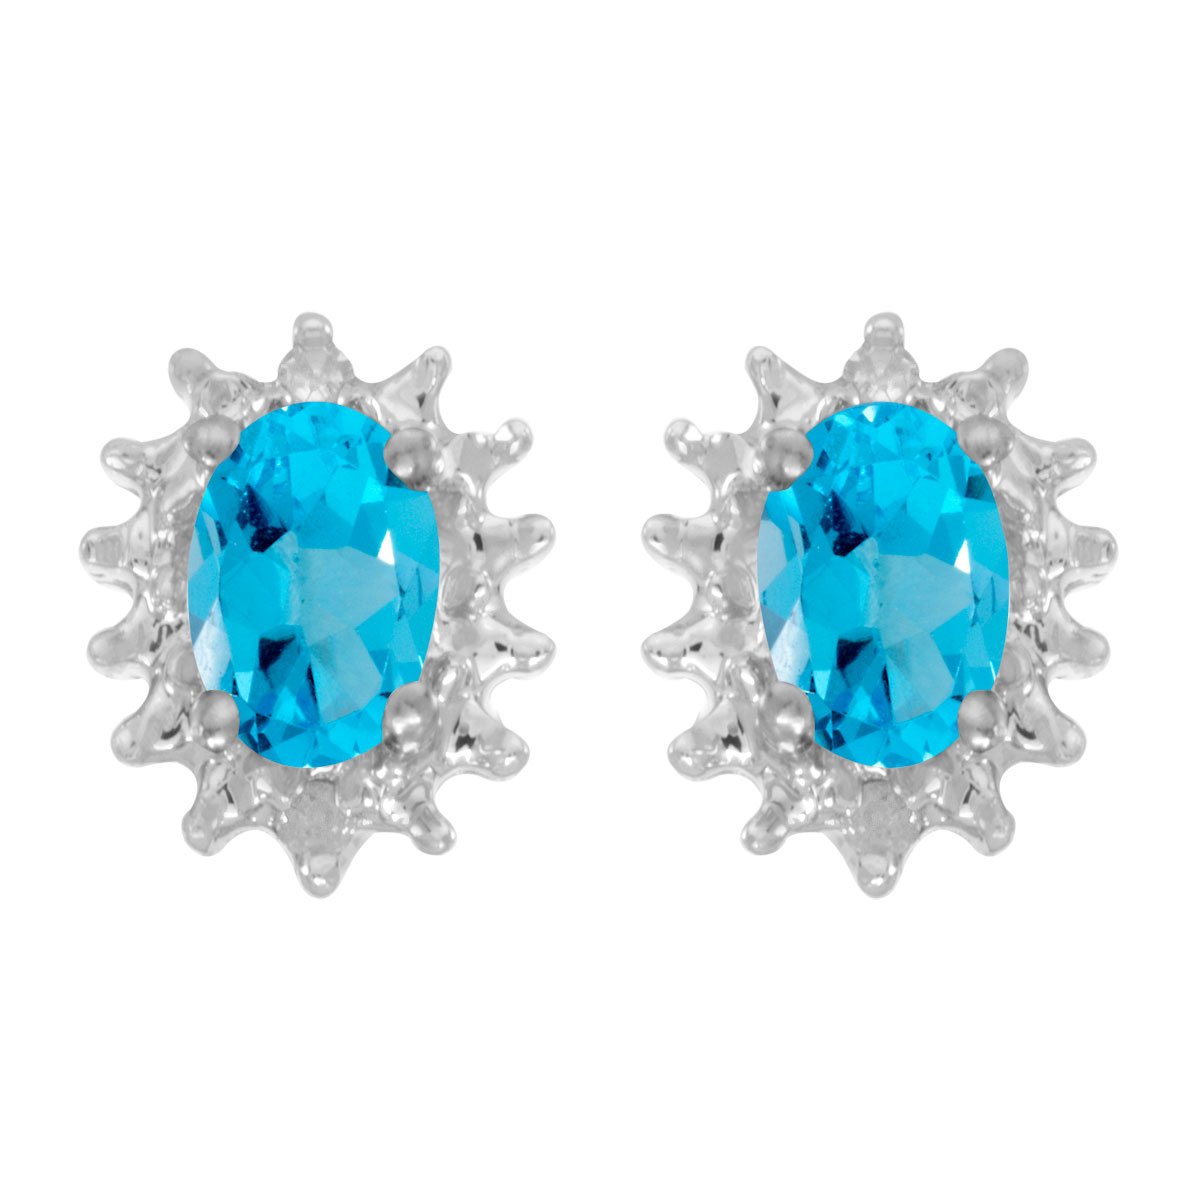 These 14k yellow gold oval blue topaz and diamond earrings feature 6x4 mm genuine natural blue to...